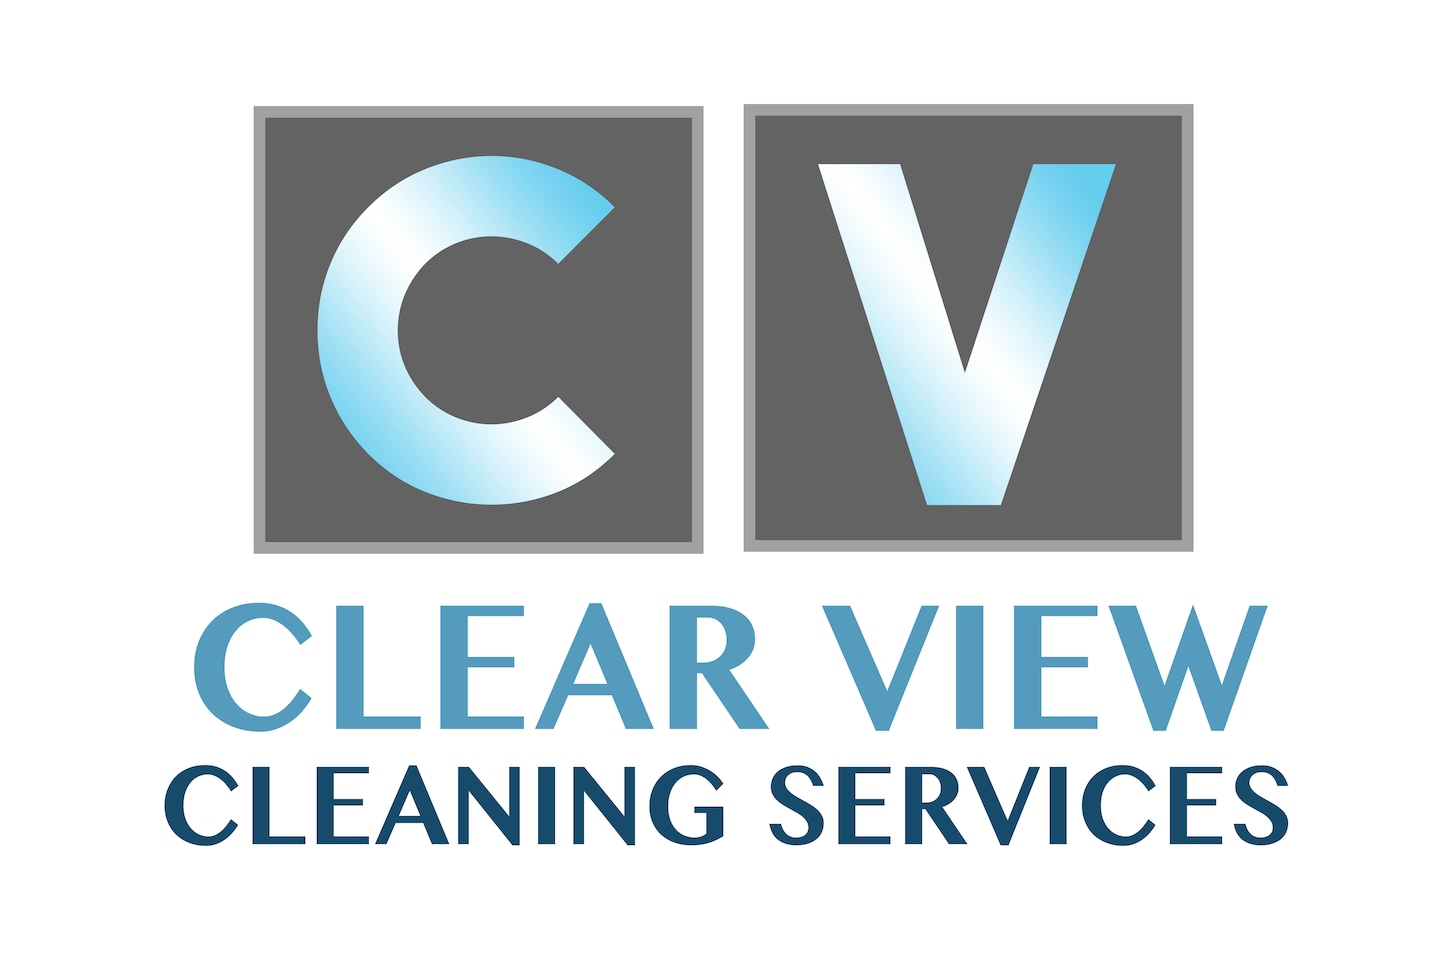 Clear View Cleaning Services